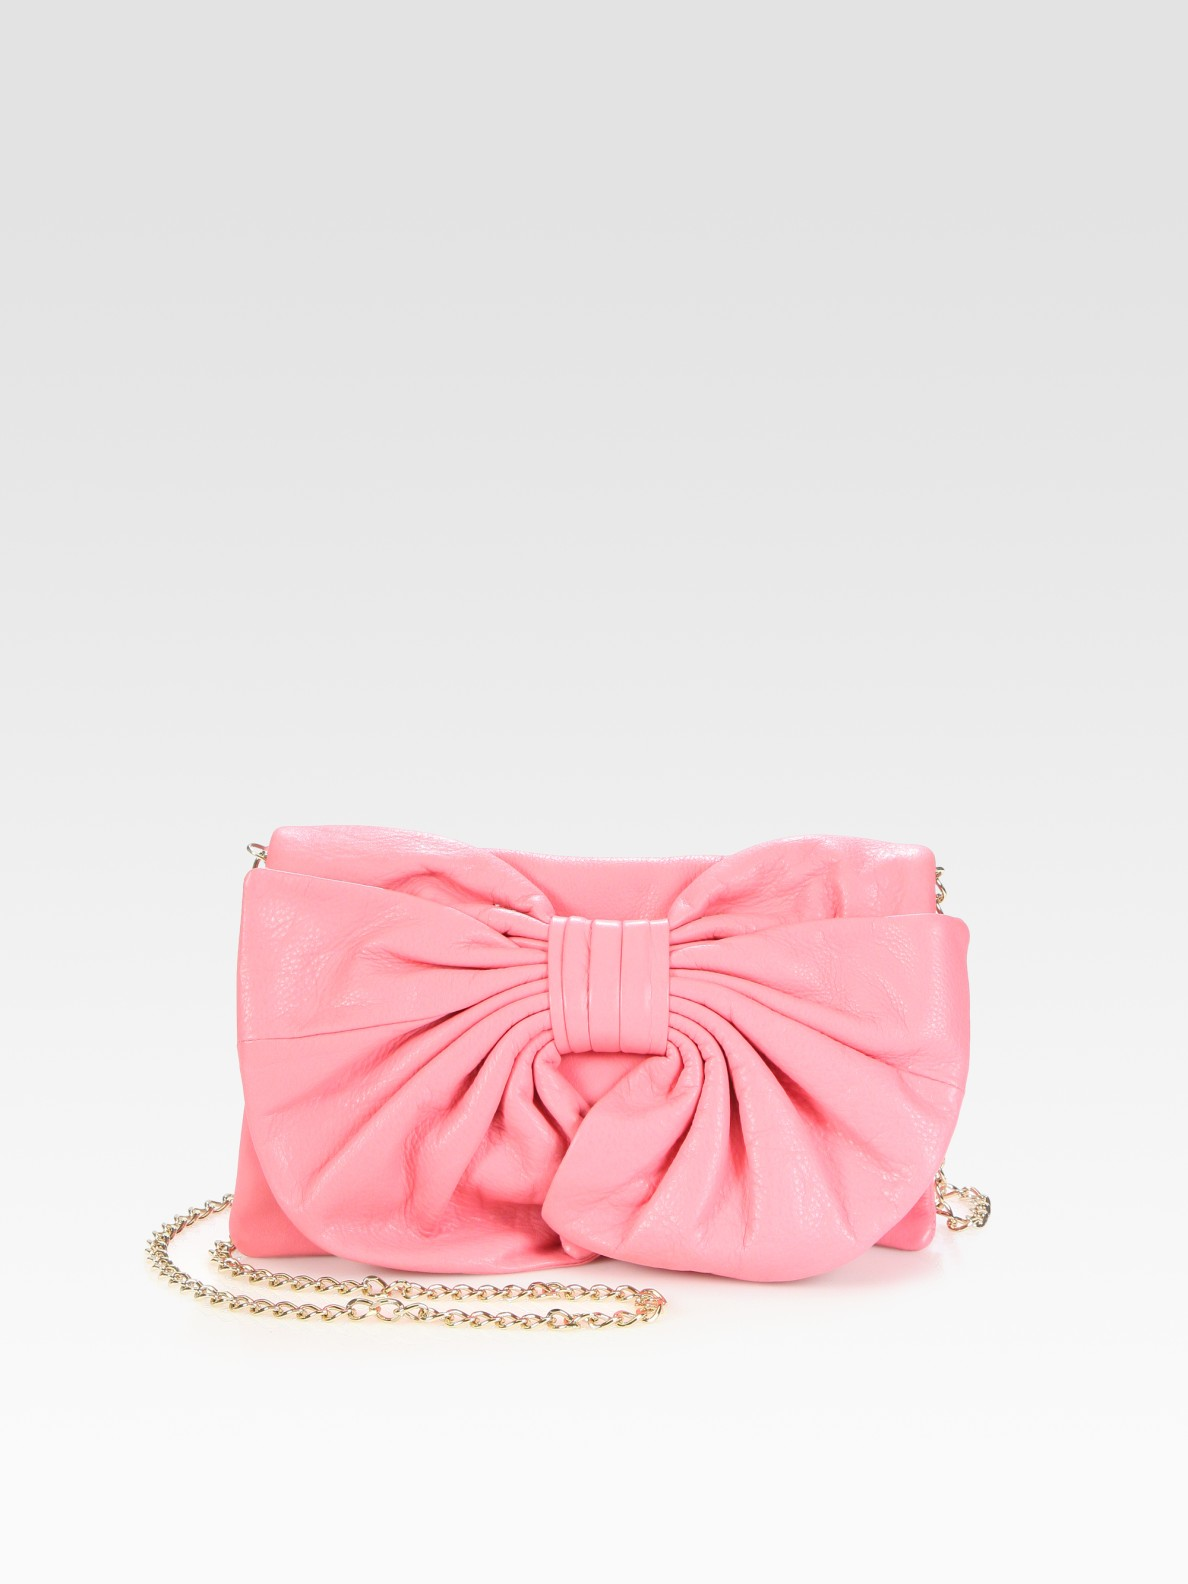 69b3a09735 RED Valentino Bow & Chain Strap Shoulder Bag in Pink - Lyst